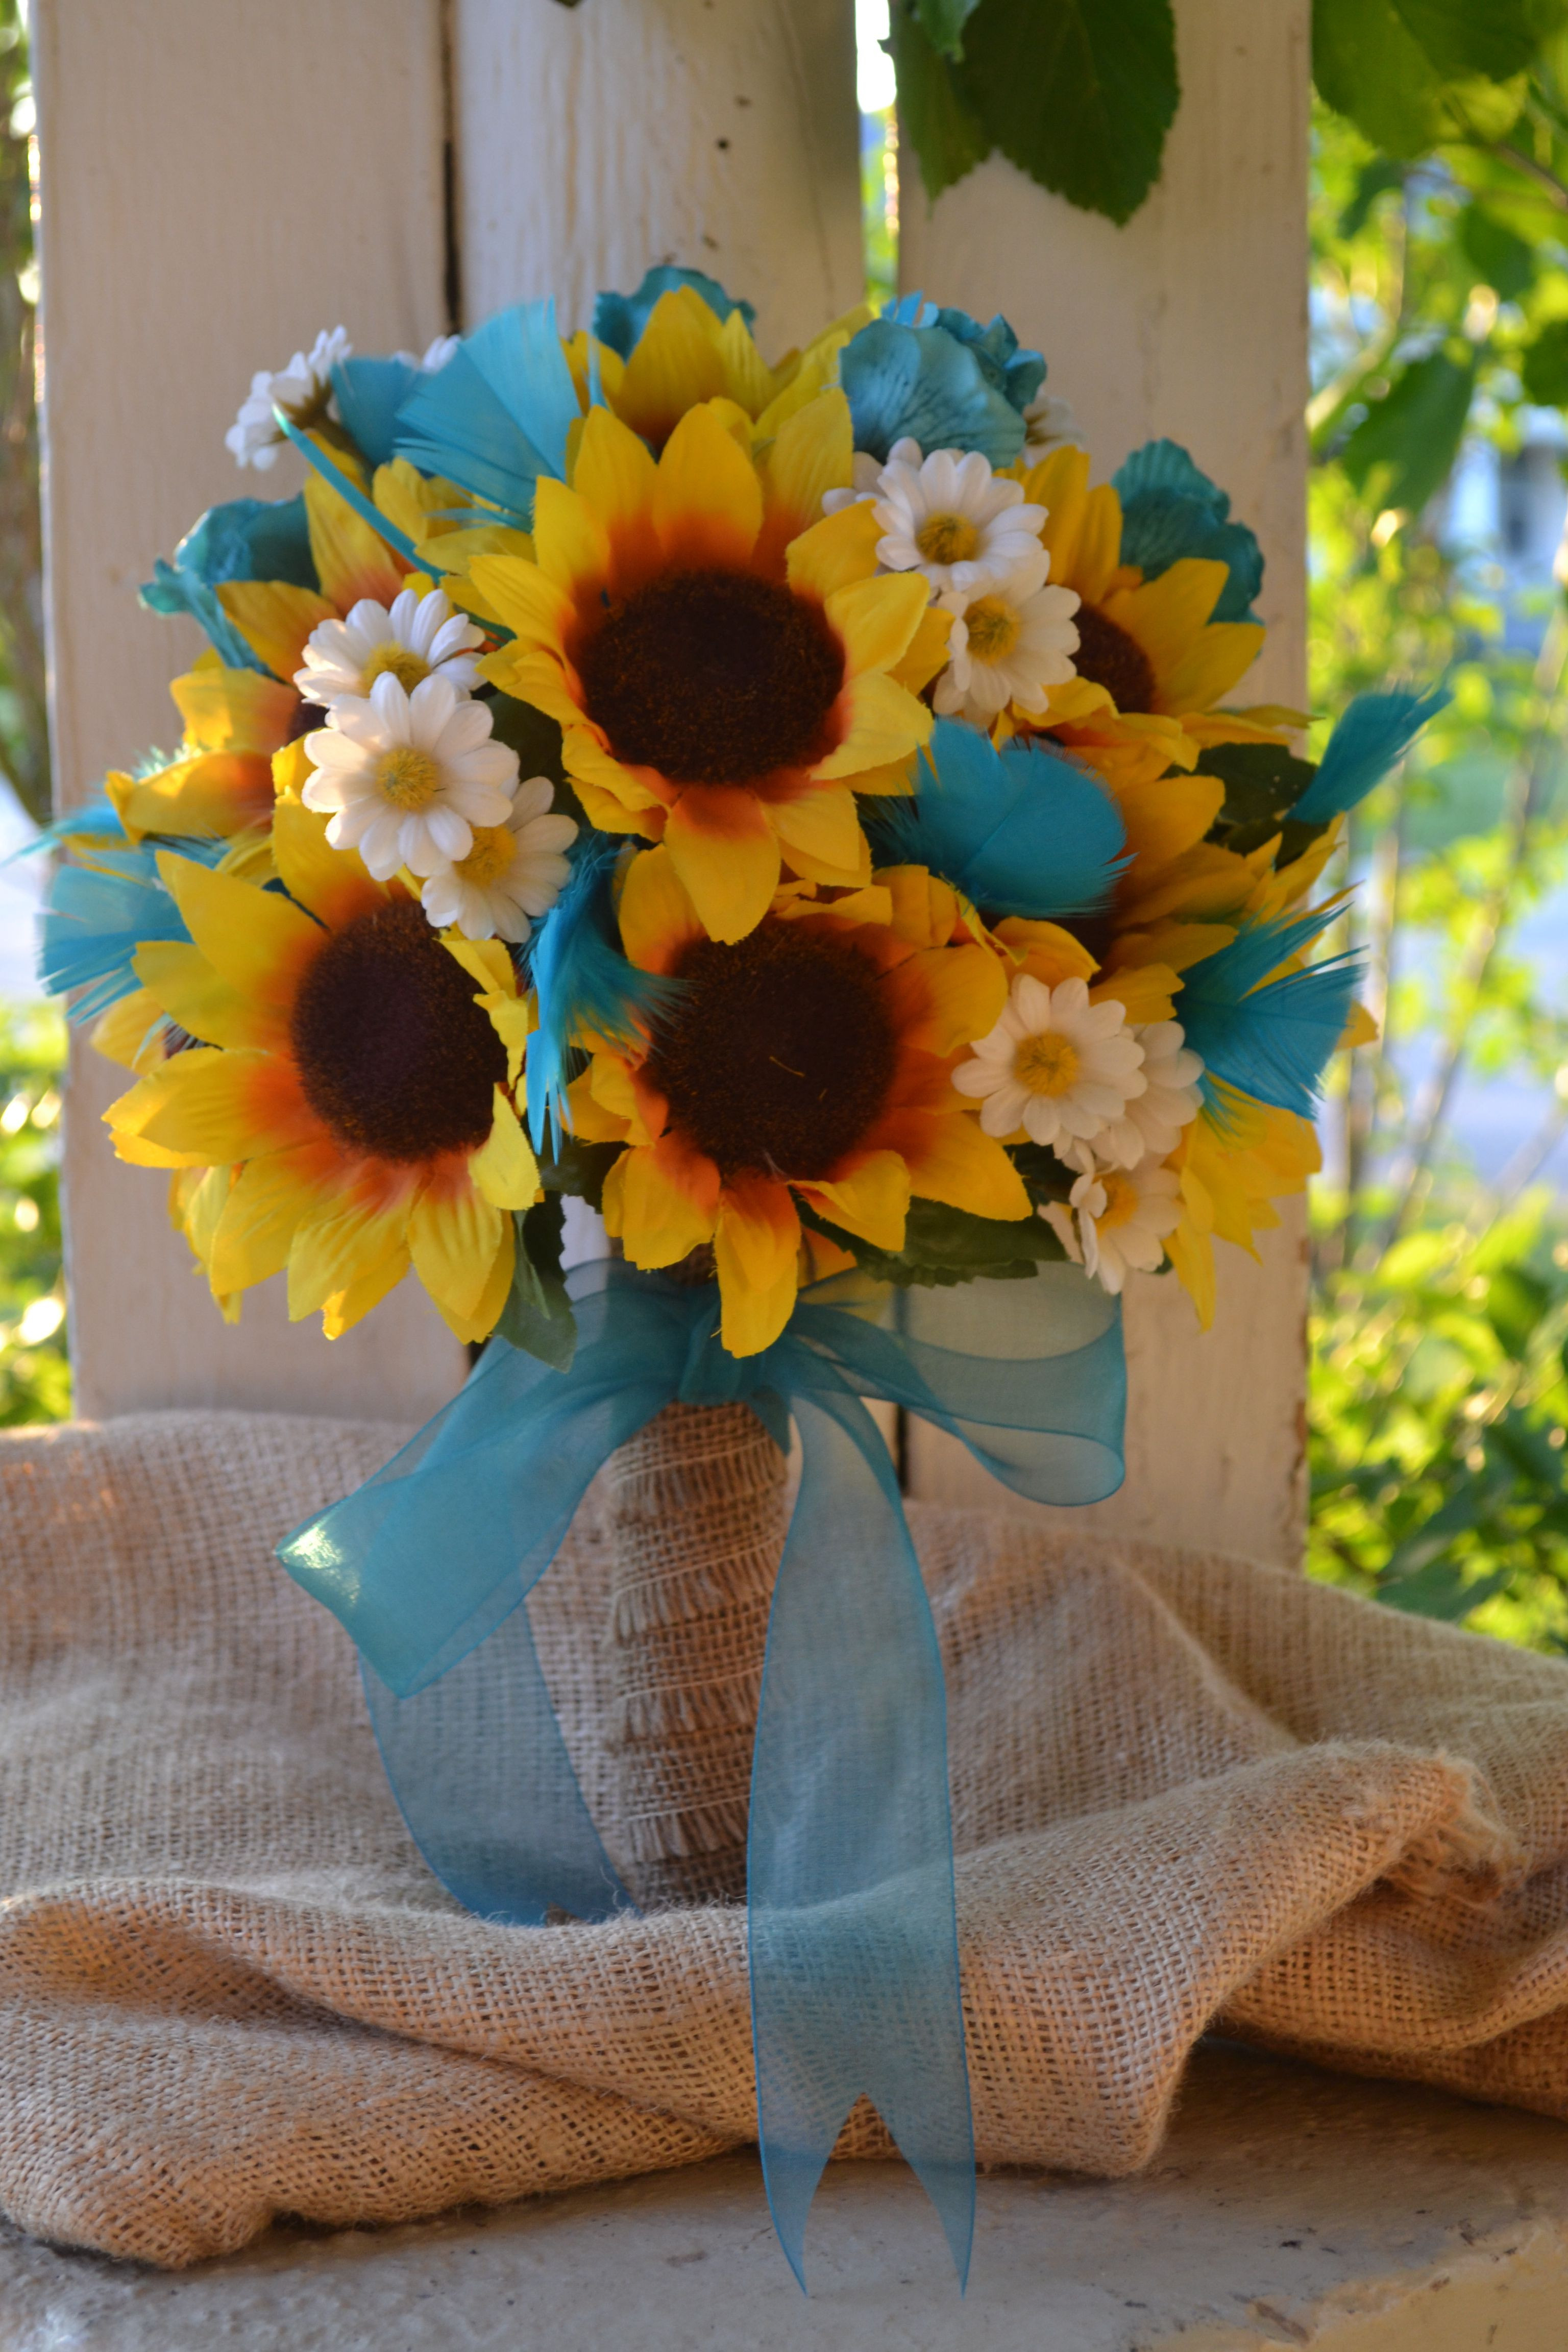 My Day Bouquet Sunflowers Turquoise Rose Buds Turquoise Goose Flowers White Daisies and Burlap Original Design ONLY My Day Bouquet